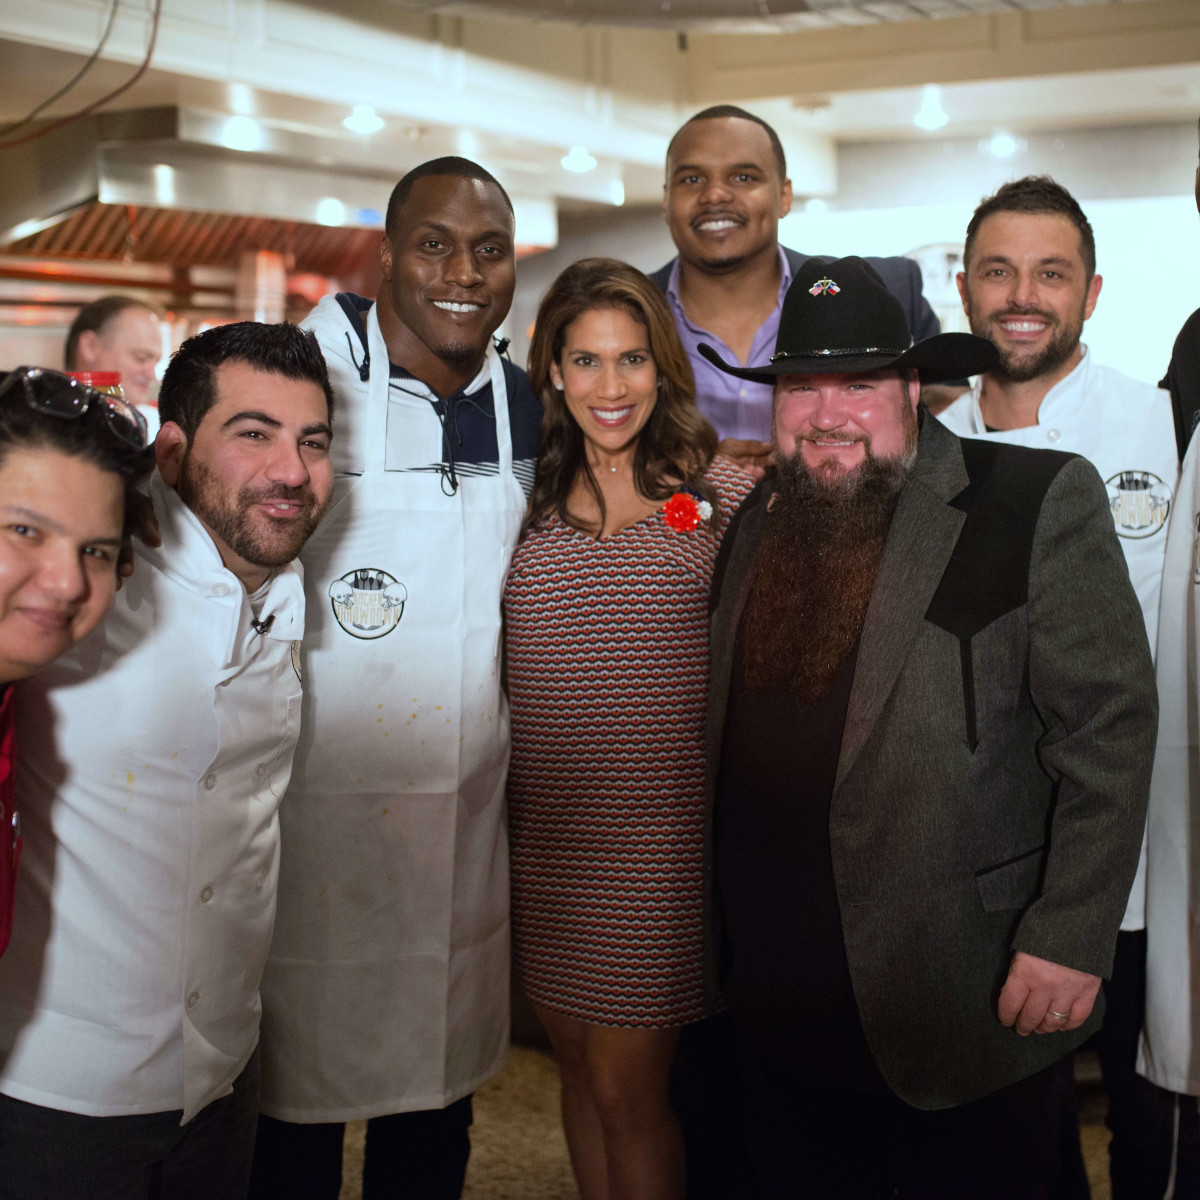 Houston, Kitchen Throwdown with Whitney Mercilus, Jan 2017, Juan Arellano, Kevin Naderi, Takeo Spikes, Rachel McNeill, Chester Pitts, Sundance Head, Sabin Lomac, Whitney Mercilus